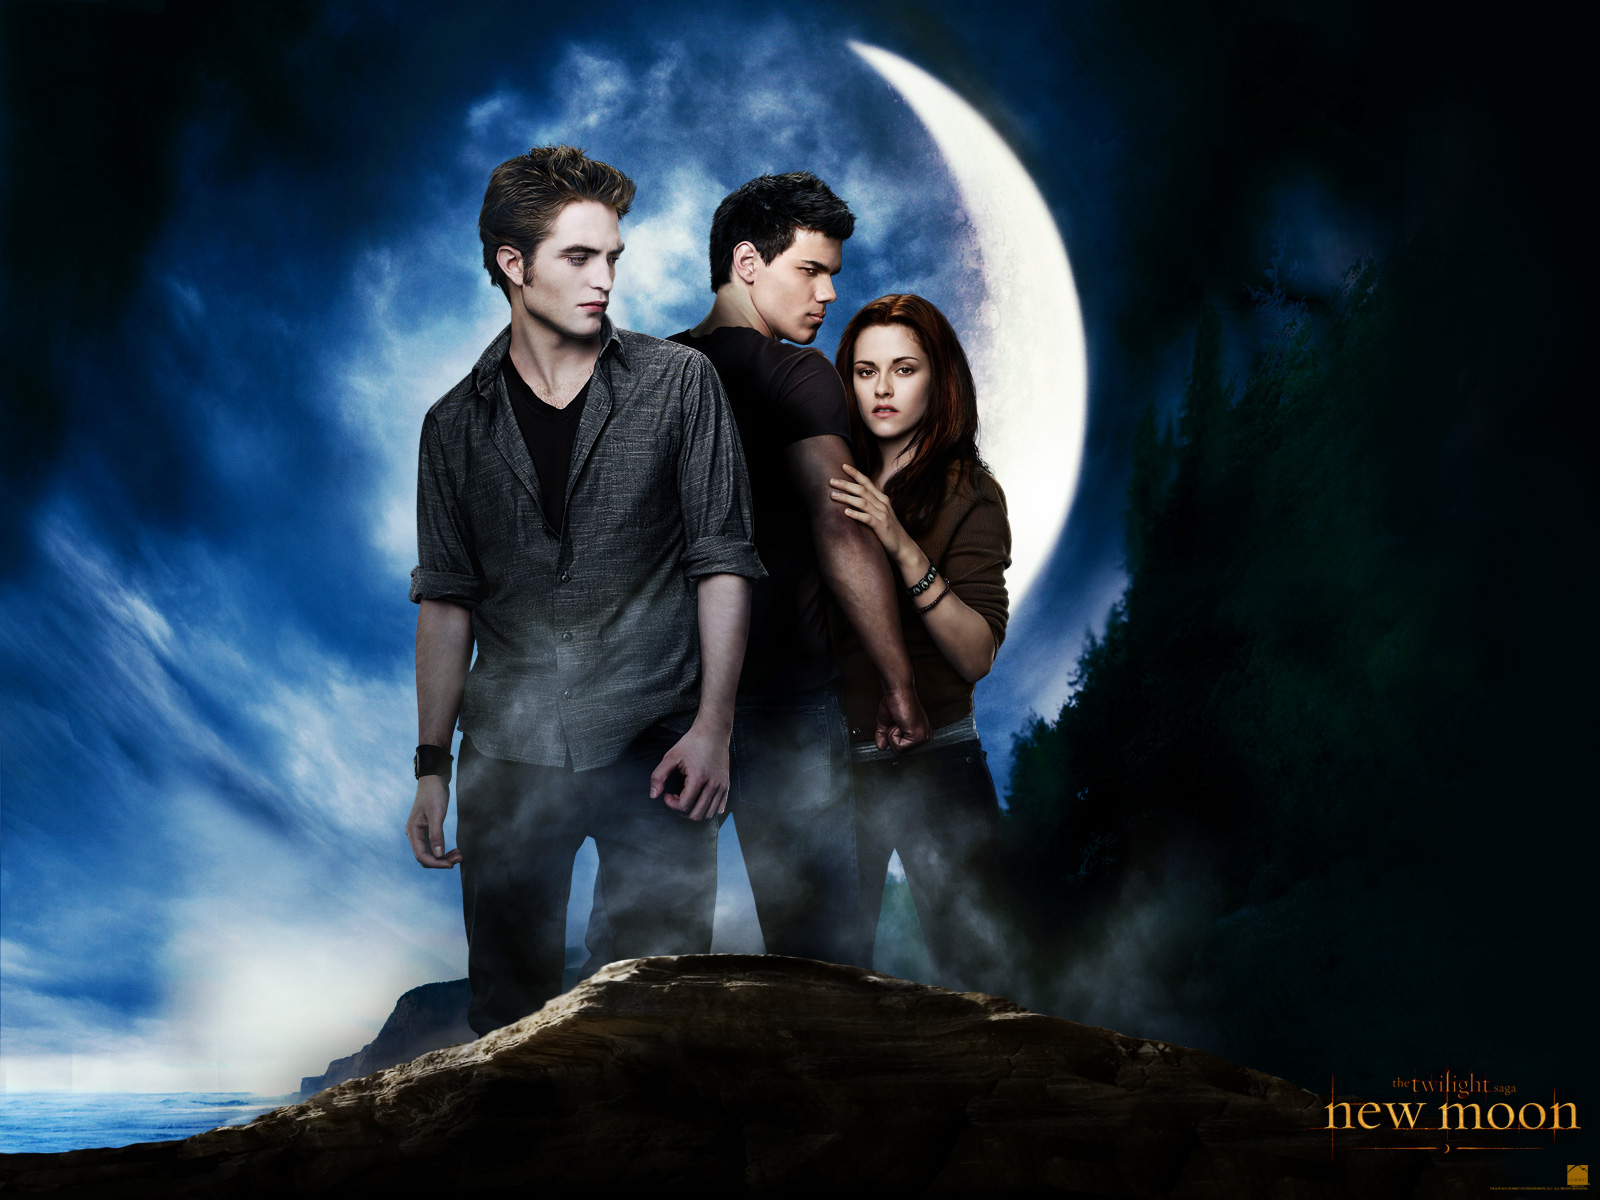 New Moon Wallpaper - New Moon Movie Wallpaper (32147436) - Fanpop